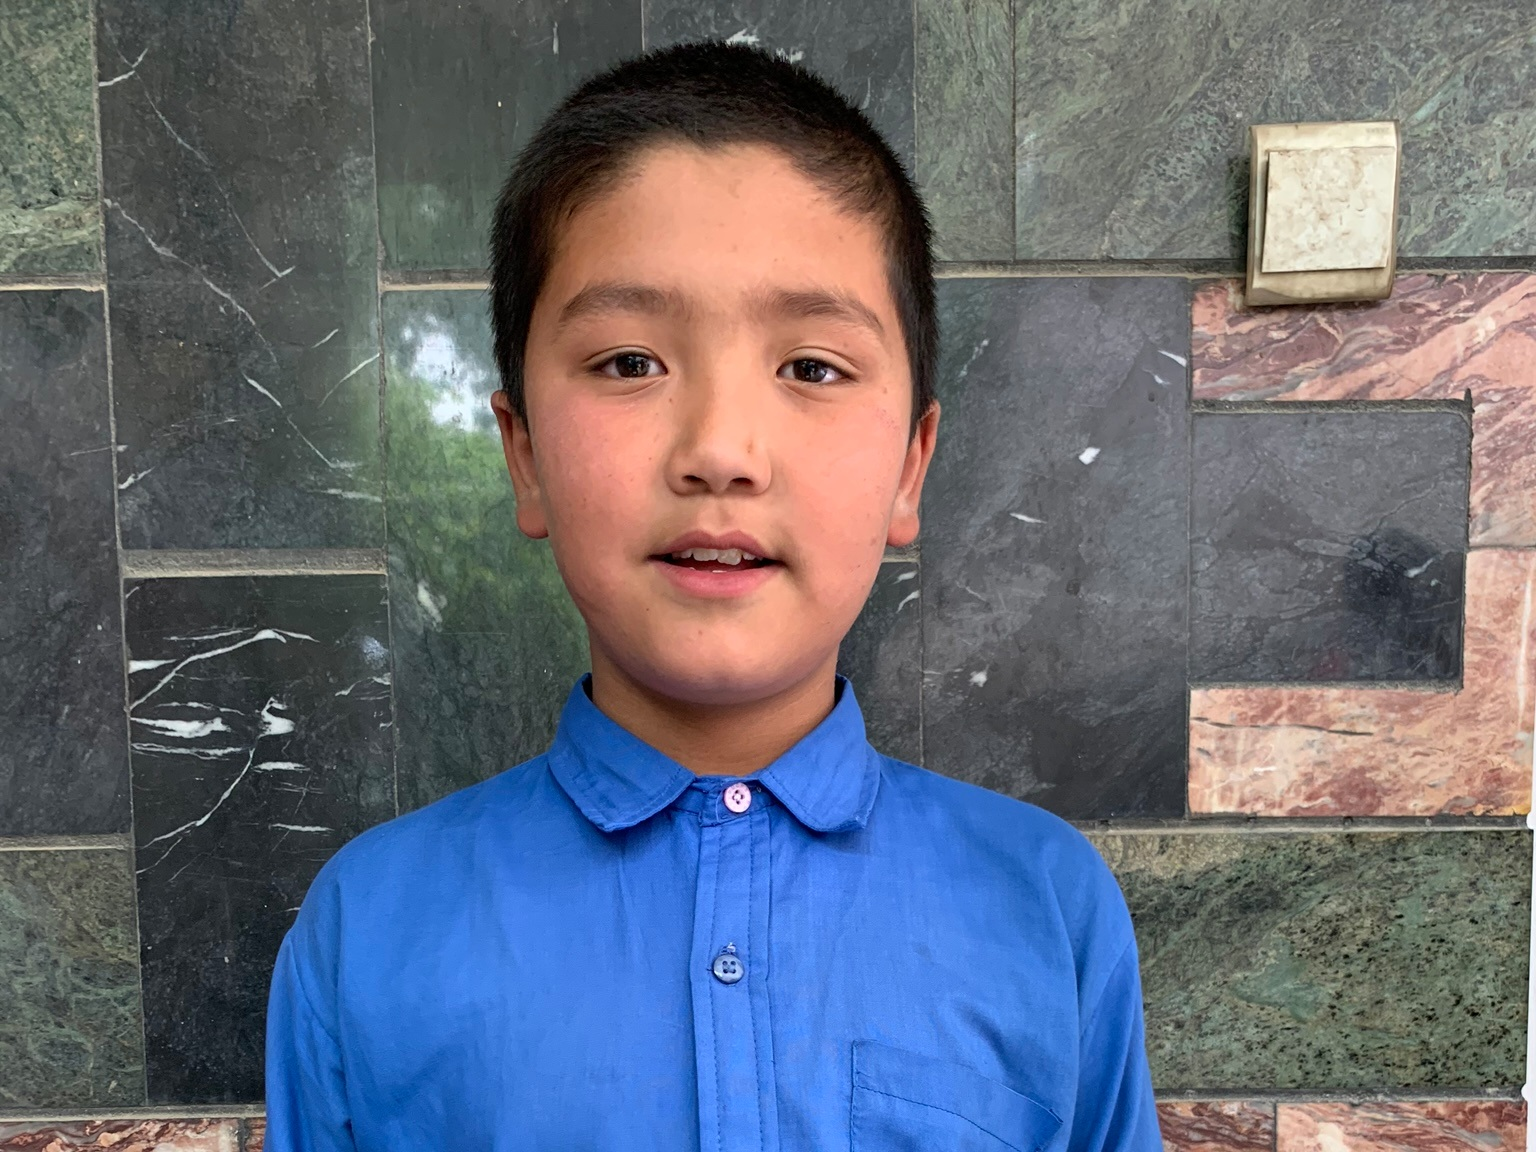 Mahdi, Age 9 - Mahdi has 1 sibling. His mother is unemployed. His father is a day laborer with a wheelbarrow.BE MAHDI'S PARTNER>